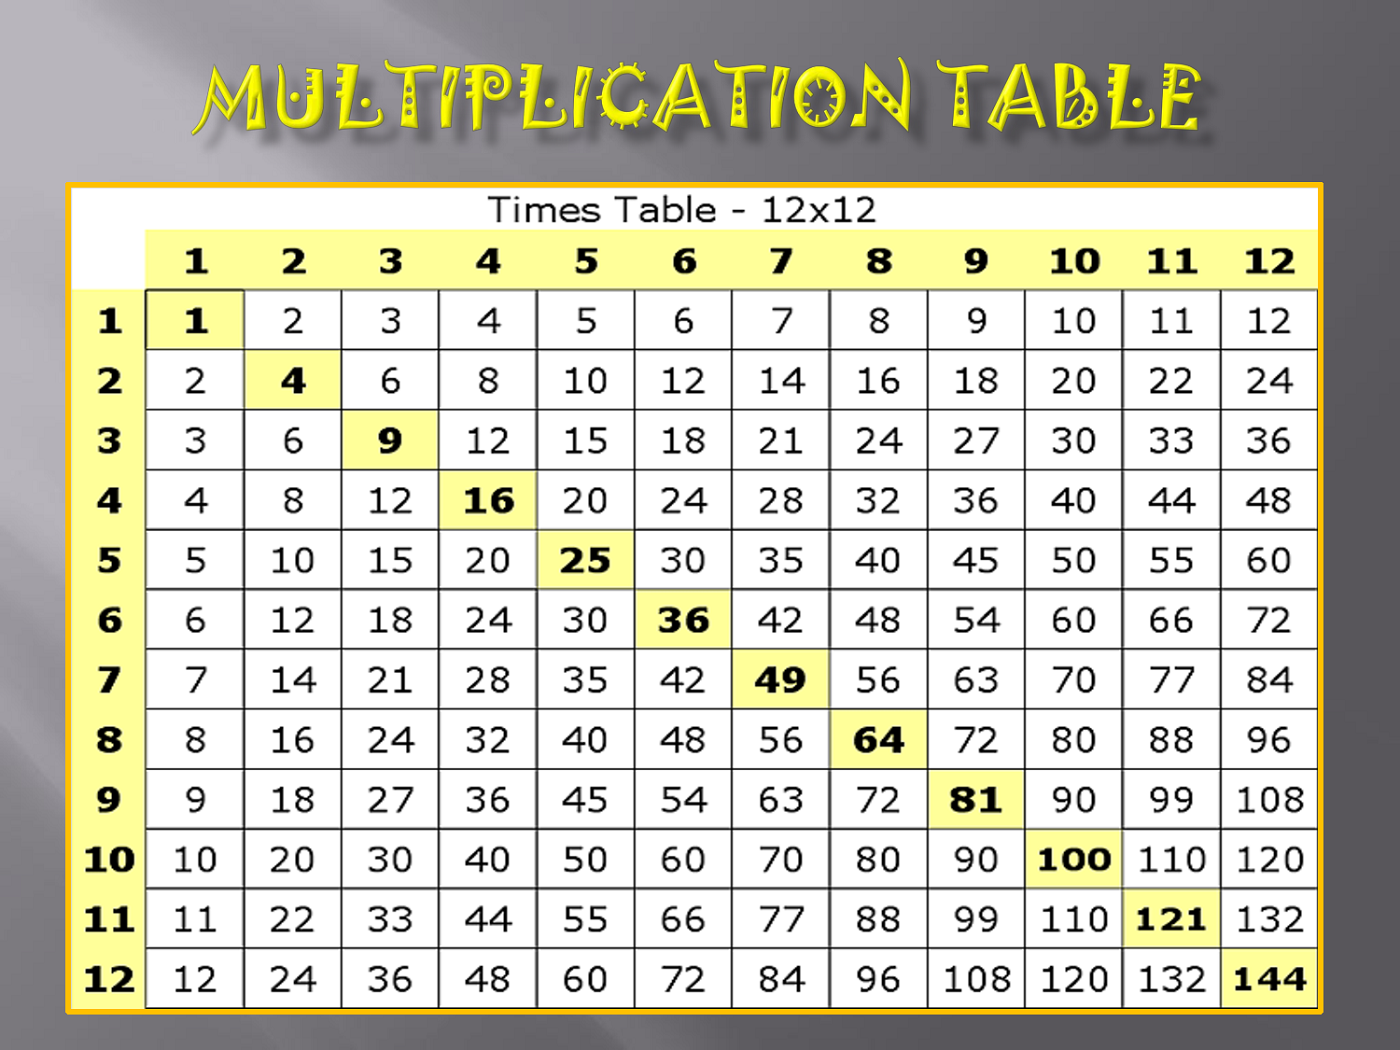 multiply-chart-table-yellow